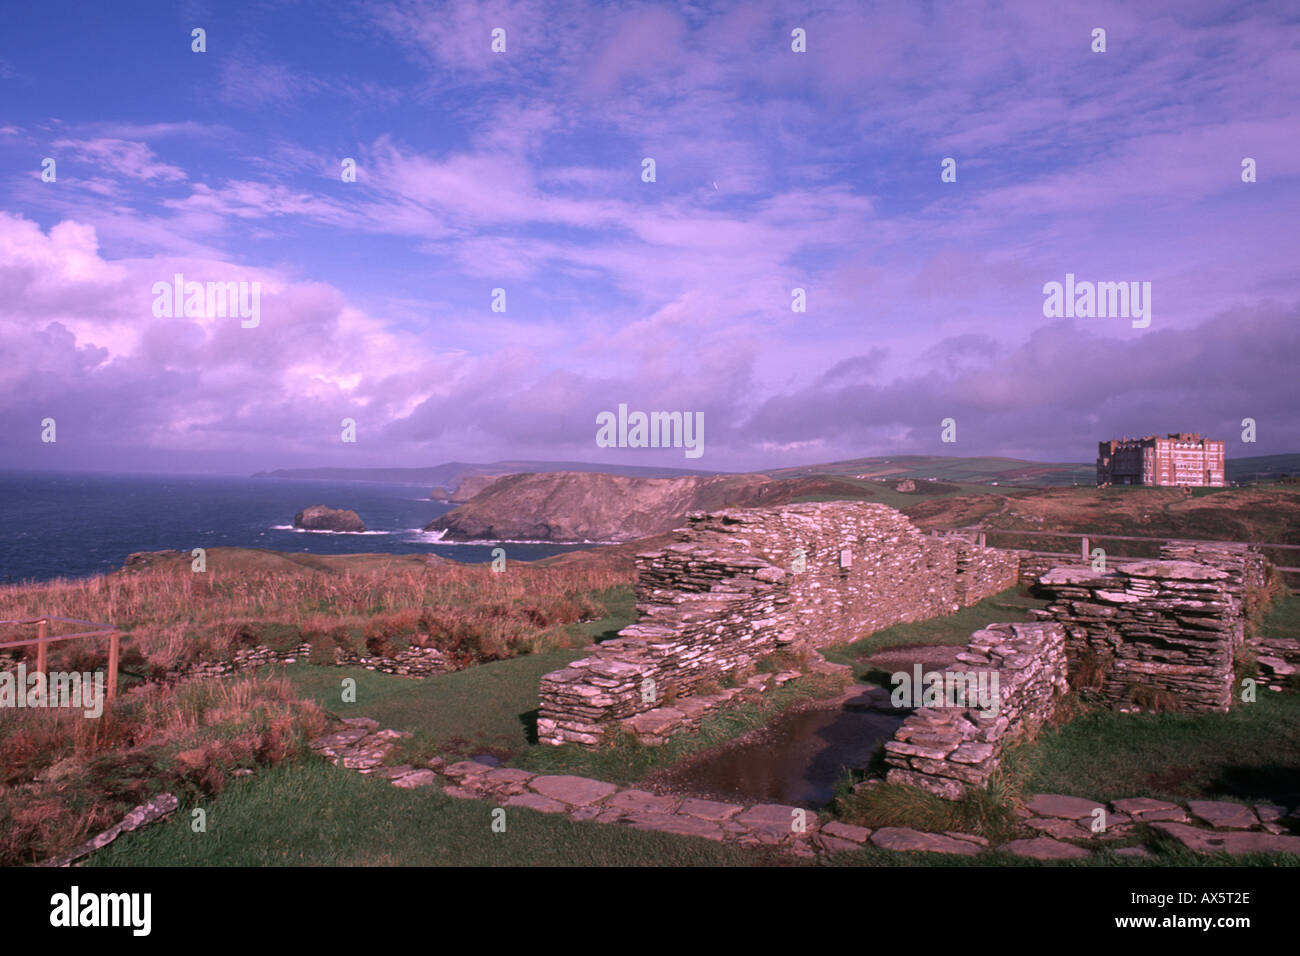 King Arthurs home Tintagel Castle in Cornwall England - Stock Image